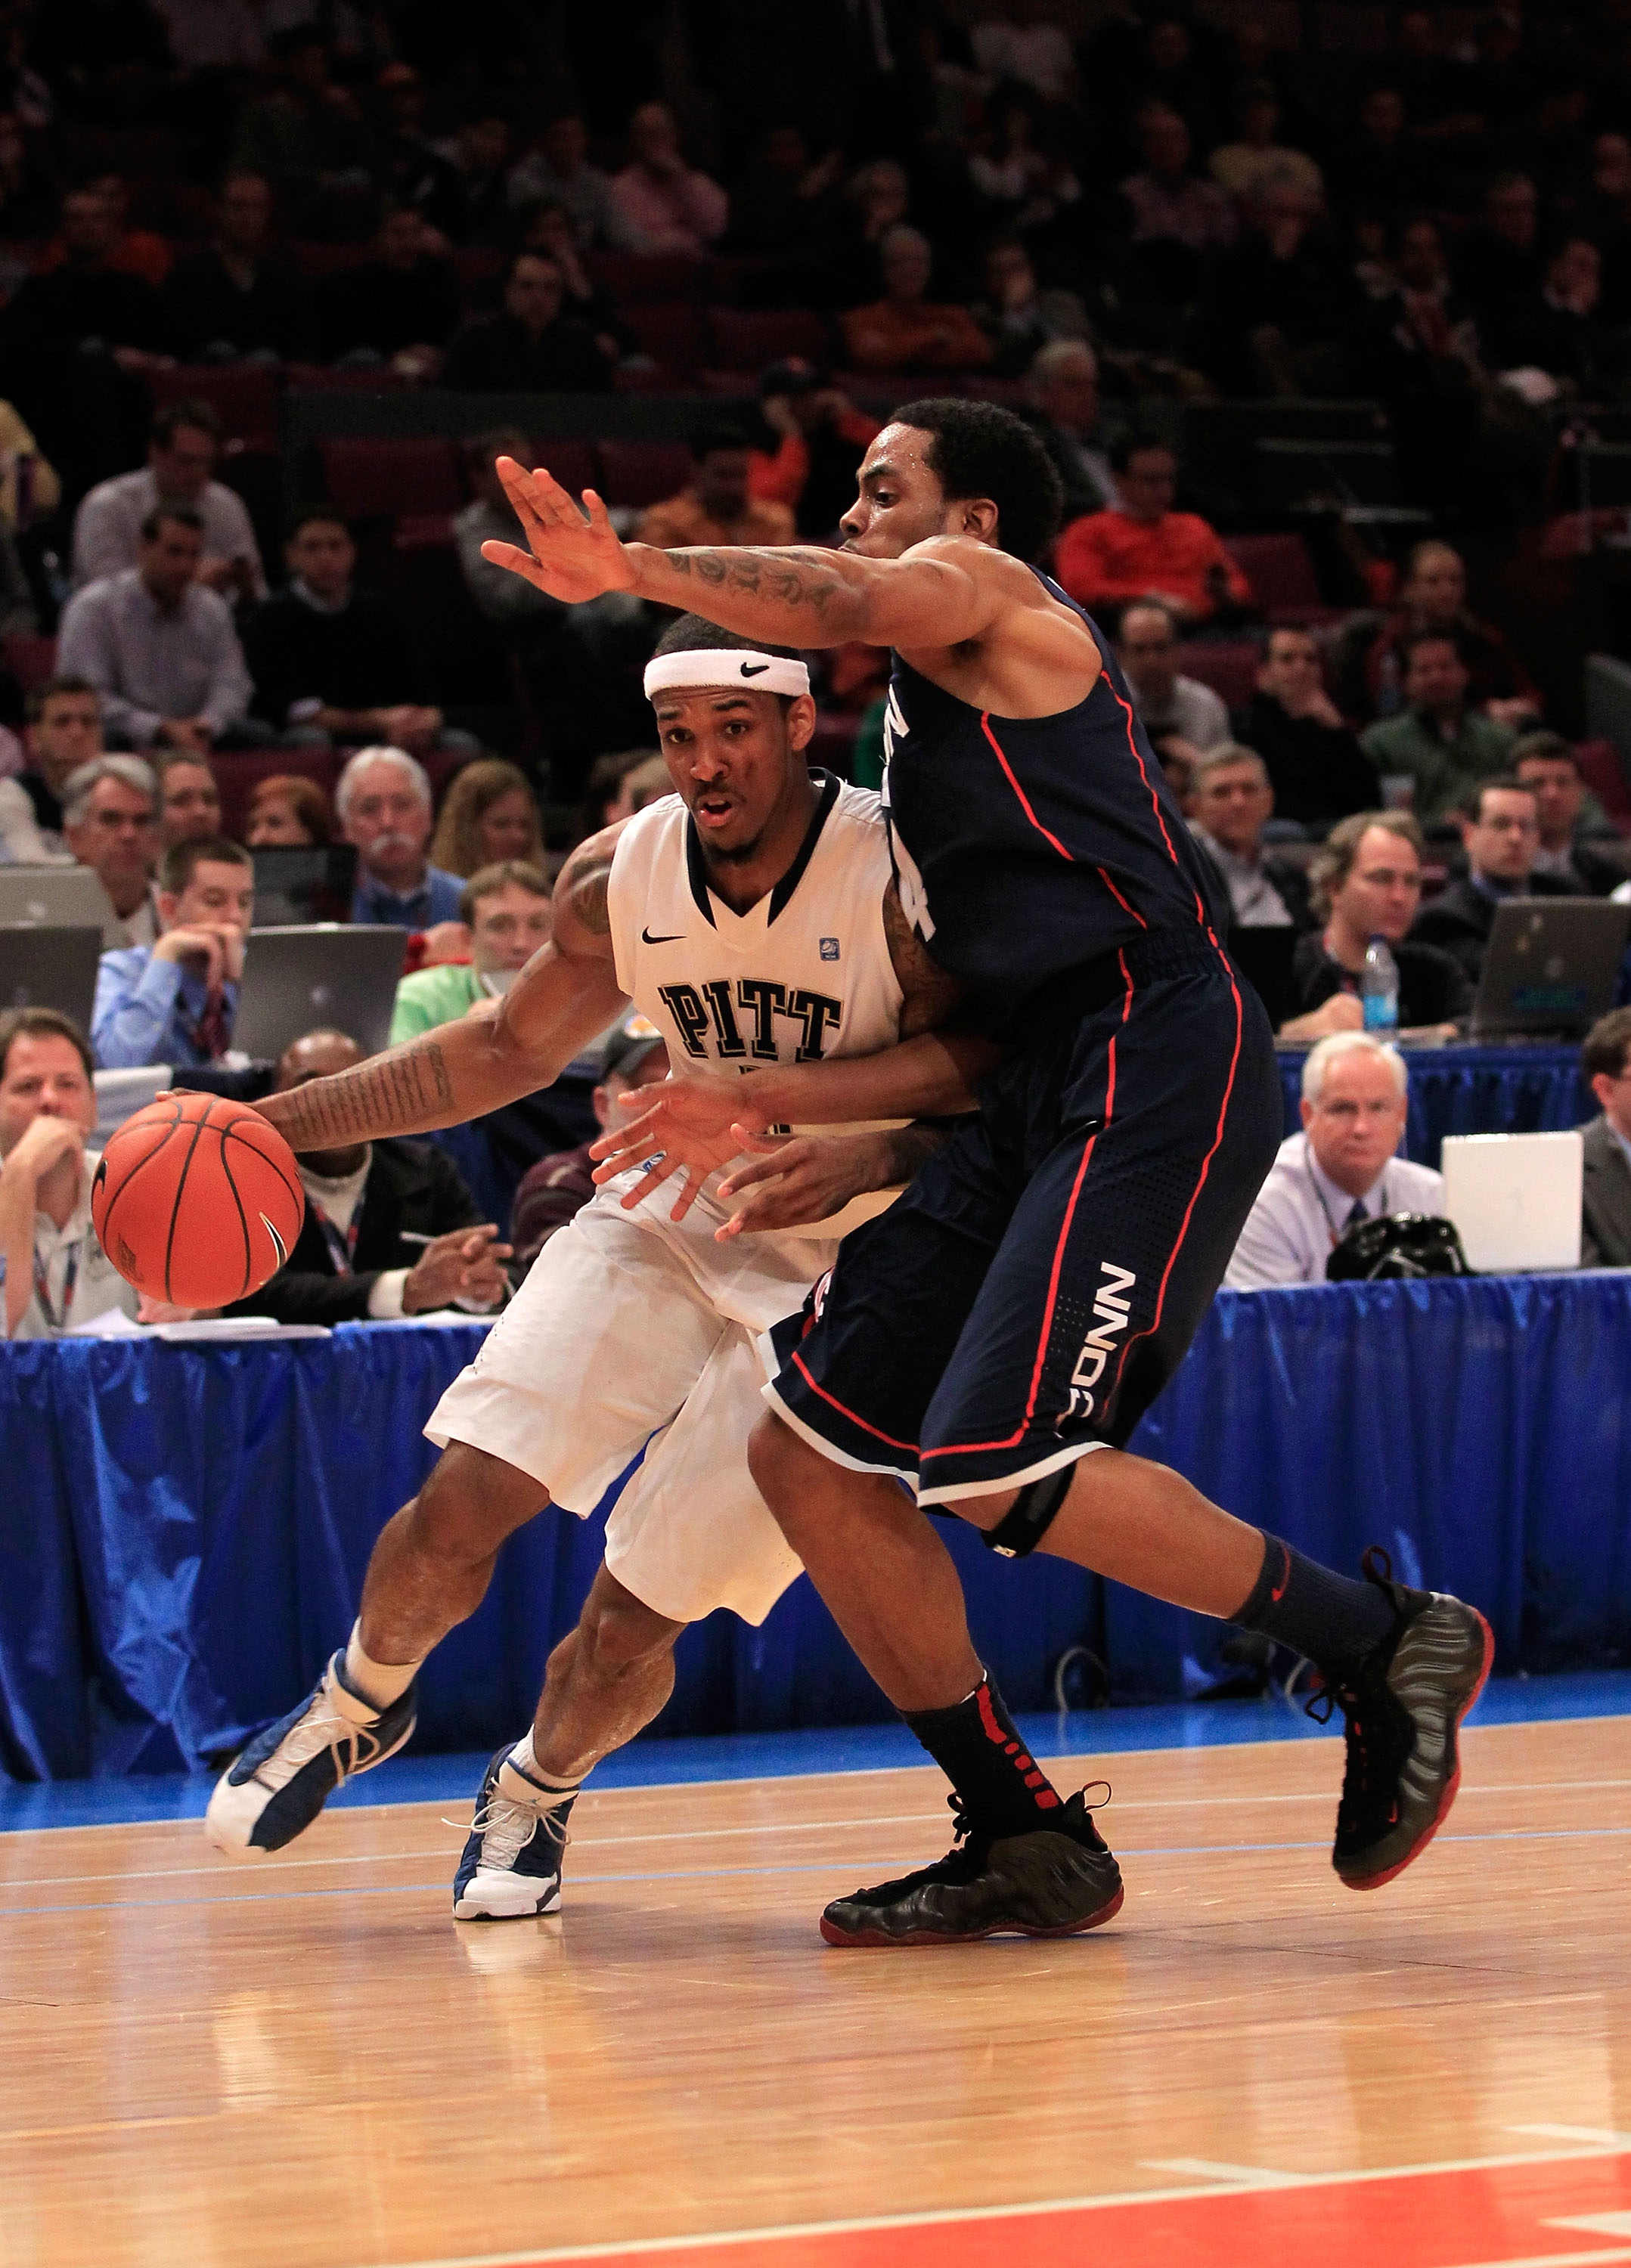 NEW YORK, NY - MARCH 10:  Gilbert Brown #5 of the Pittsburgh Panthers dribbles past Jamal Coombs-McDaniel #4 of the Connecticut Huskies during the quarterfinals of the 2011 Big East Men's Basketball Tournament presented by American Eagle Outfitters  at Ma